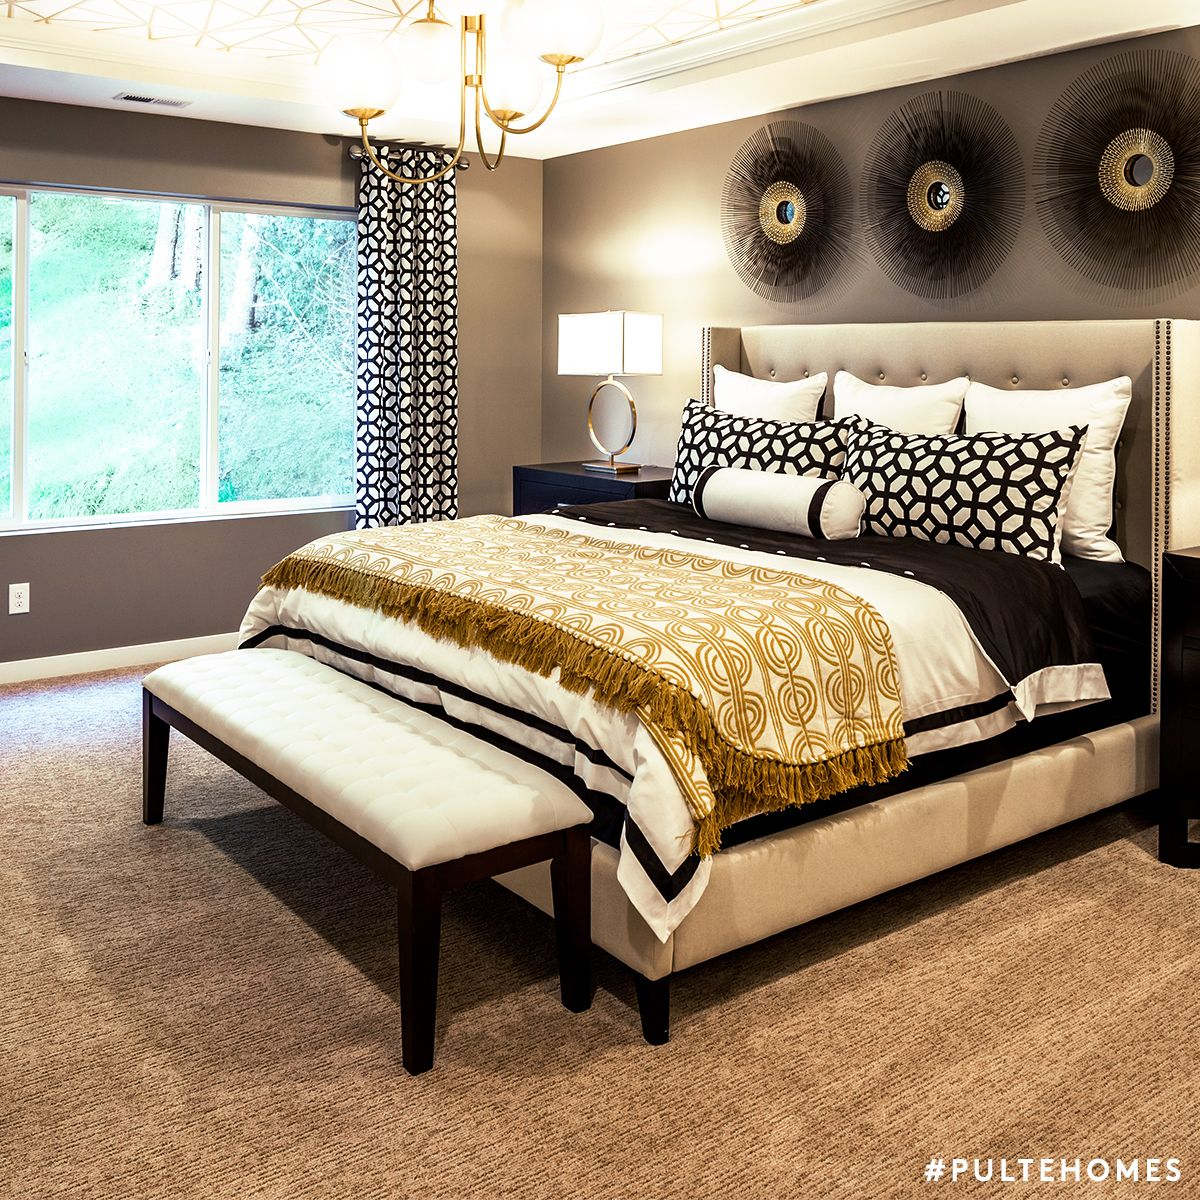 Gold Tones Paired With Black Accents Creates Gothic Chic Vibes In